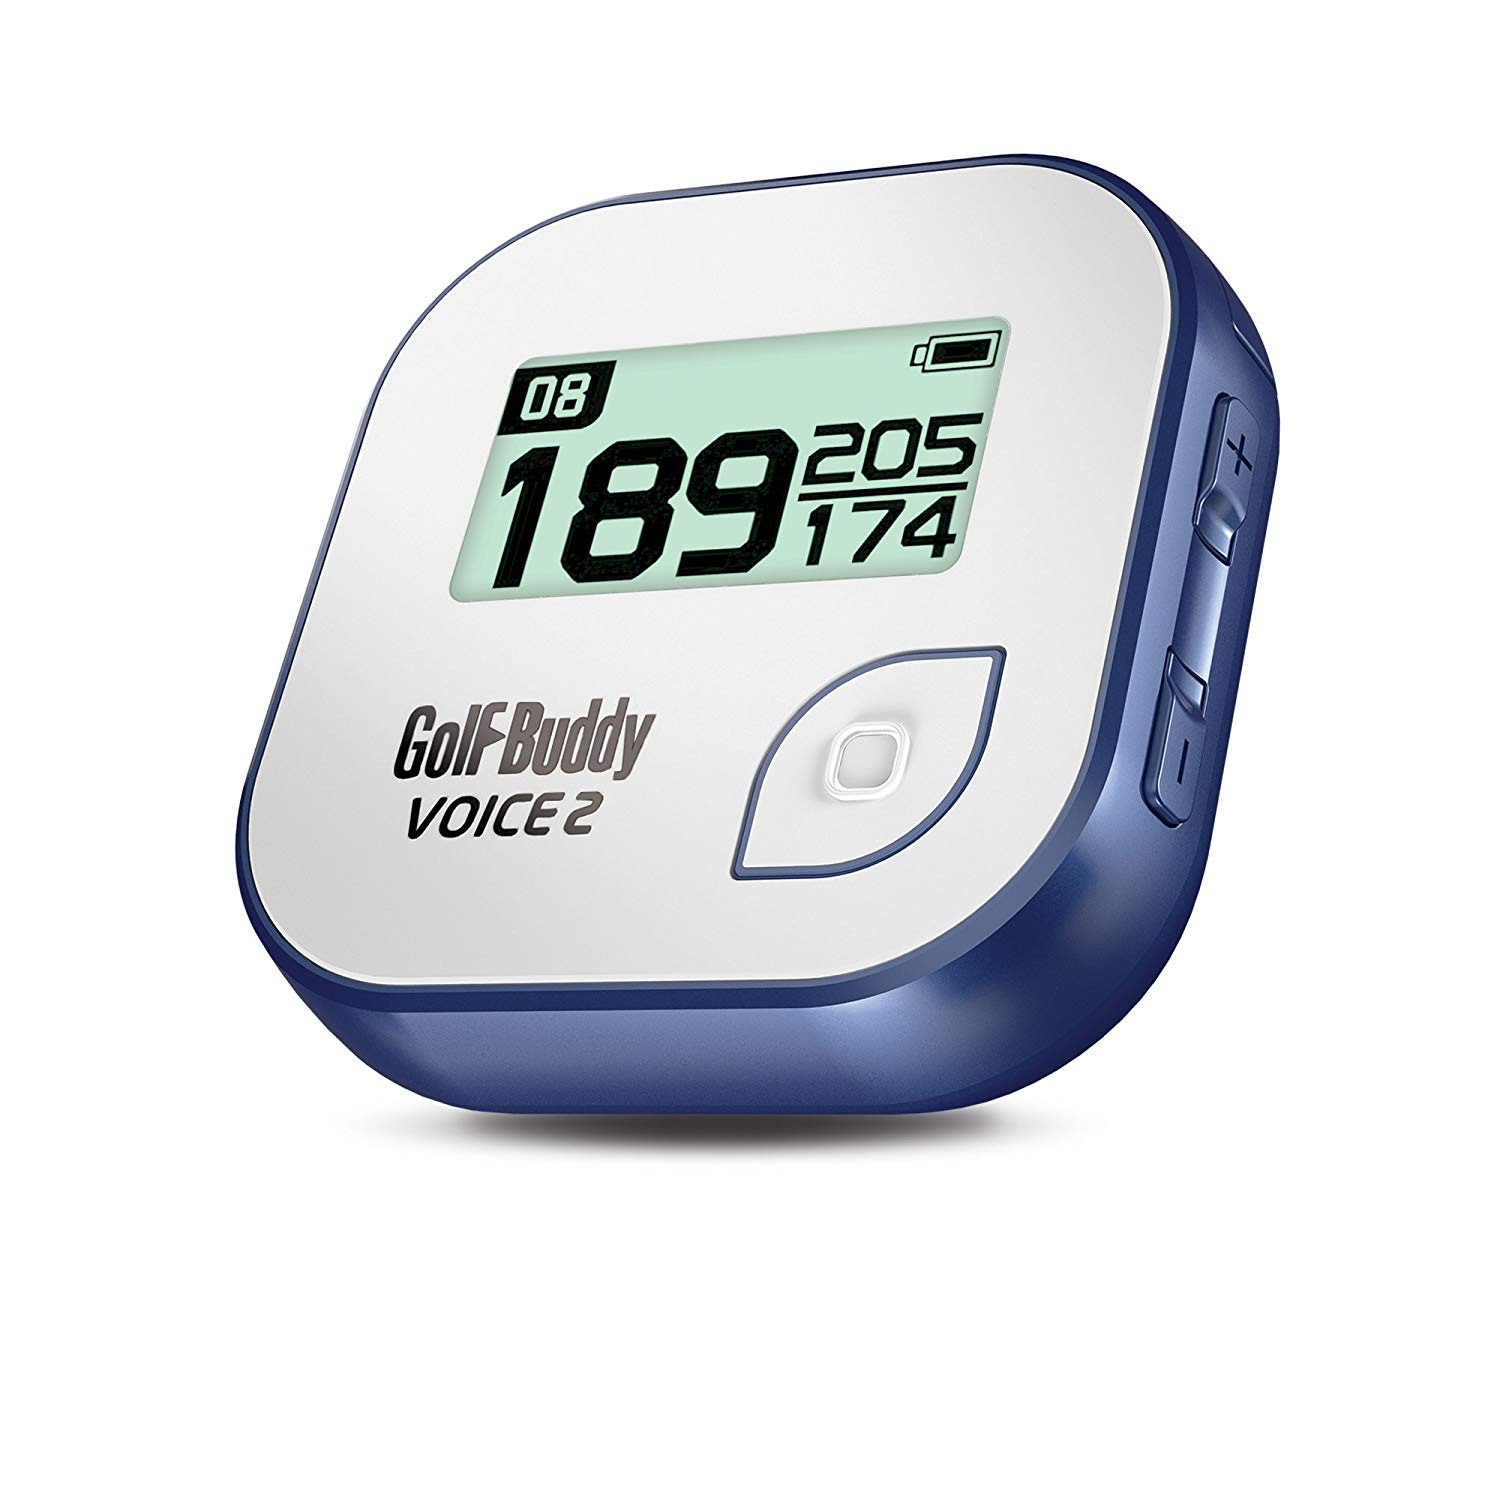 Review of GolfBuddy Voice 2 Golf GPS/Rangefinder